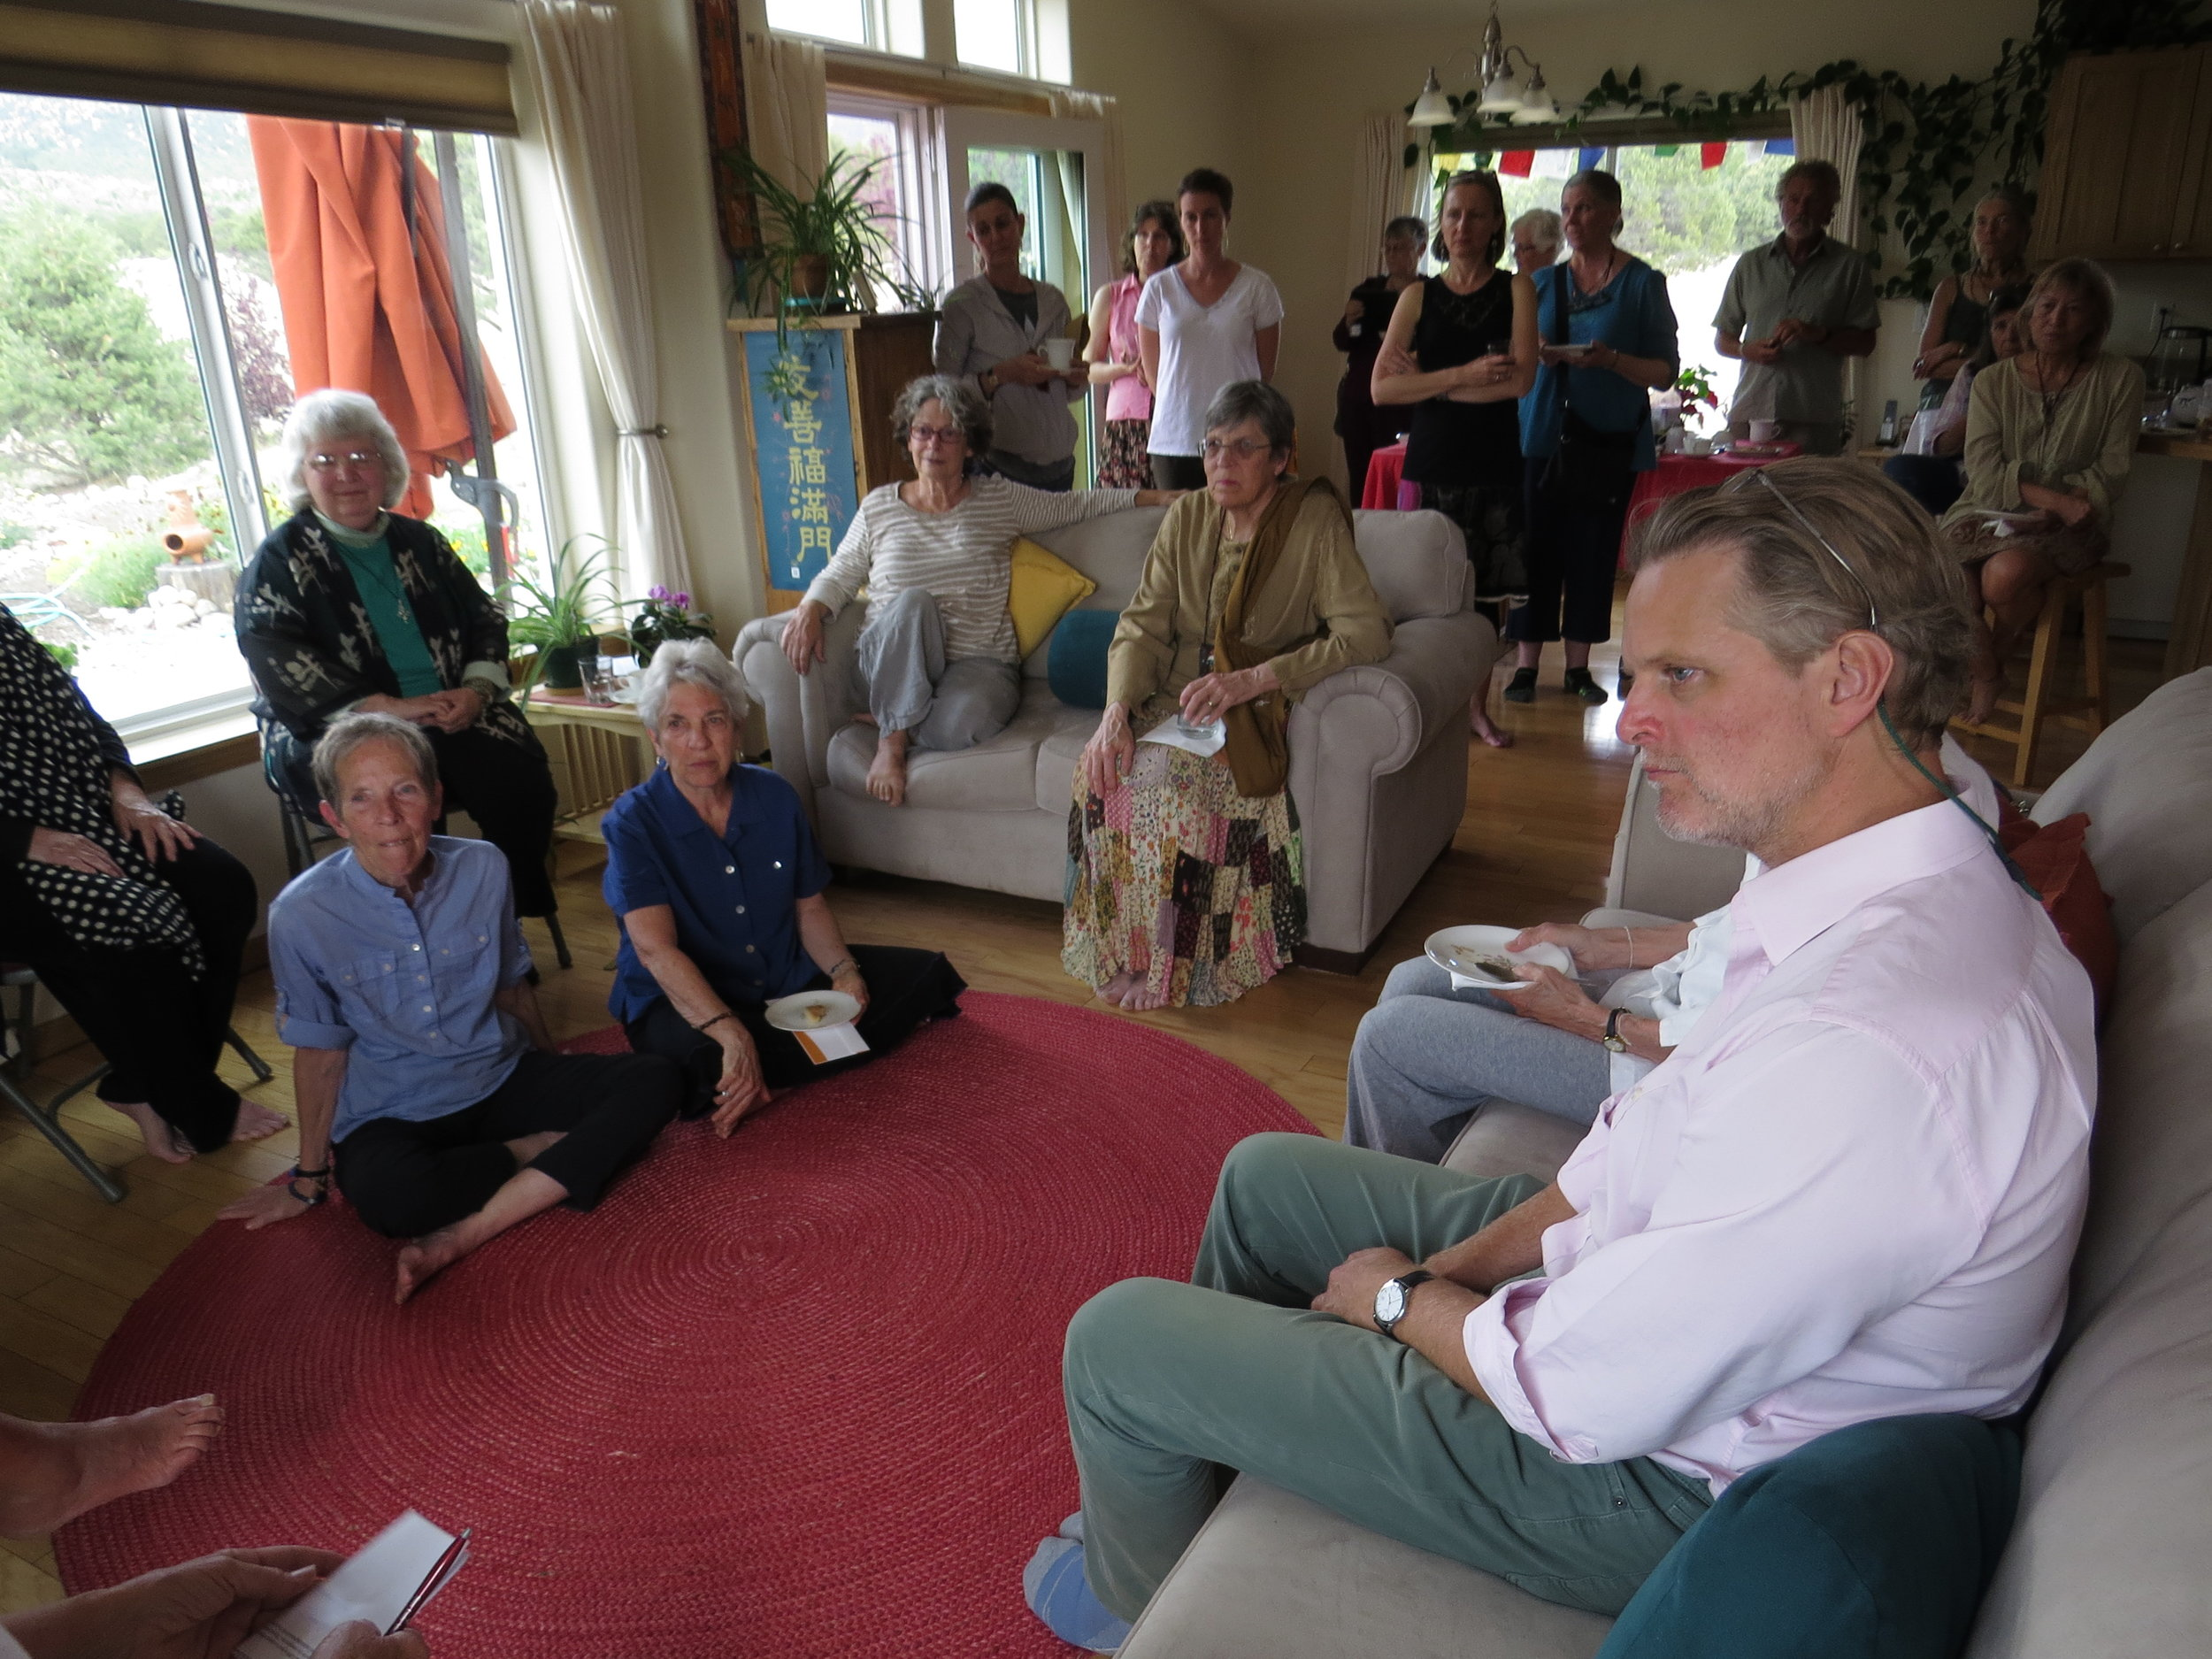 Attendees listen to Ven. Thubten Chödrön's presentation about Pema Chöling's history and activities. In the lower right is Owsley Brown, whose foundation provides major annual support for Pema Chöling.